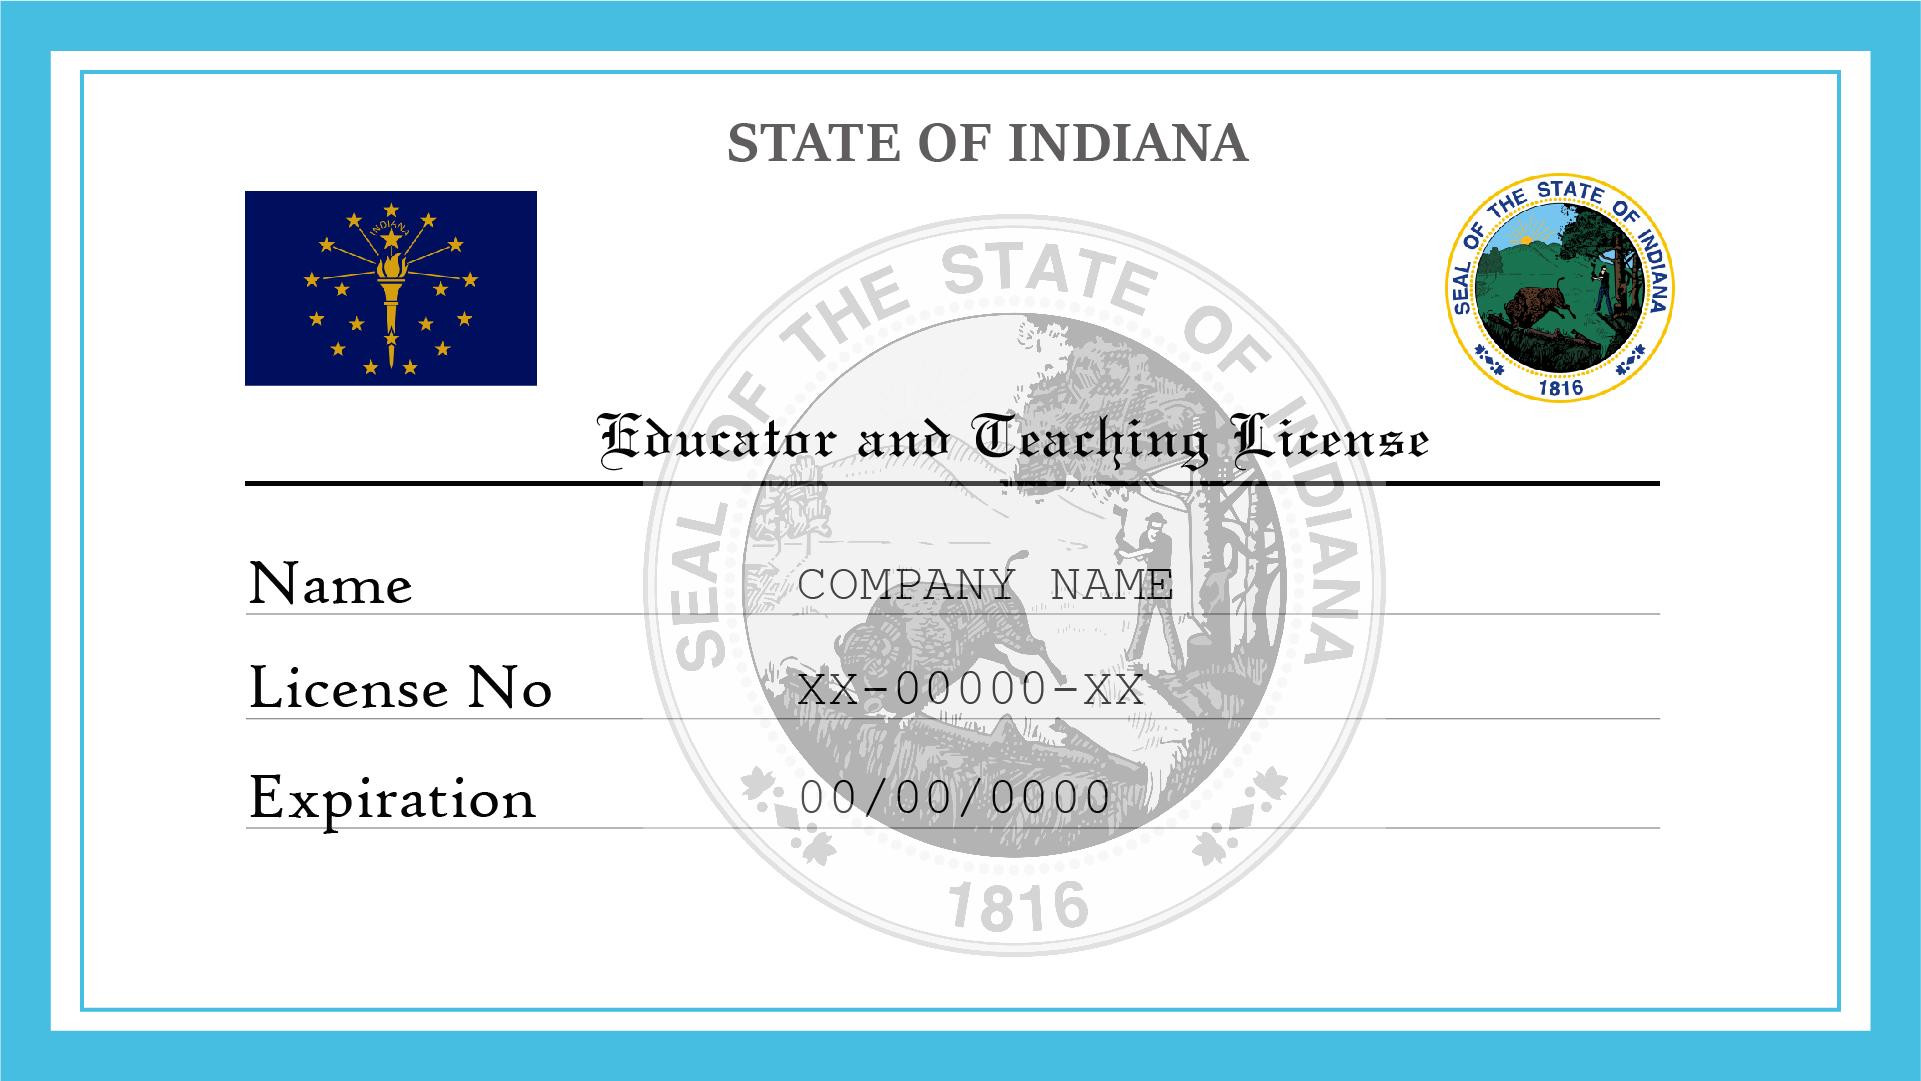 Sample Indiana Educator And Teaching License